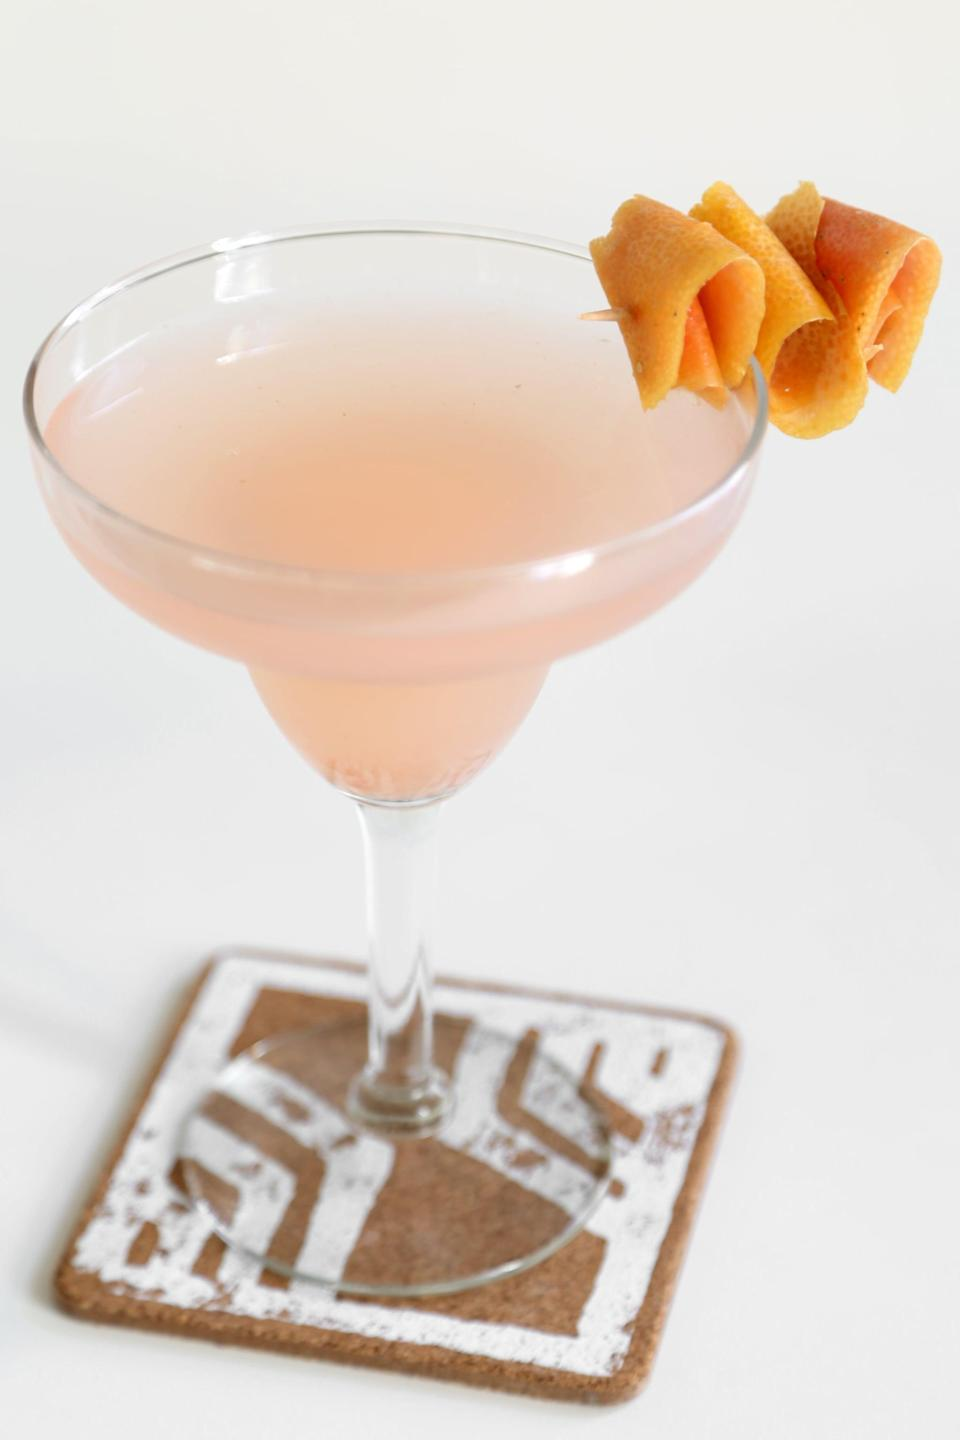 """<p>Created by Bartender Tobin Shea at <a href=""""https://redbird.la/"""" class=""""link rapid-noclick-resp"""" rel=""""nofollow noopener"""" target=""""_blank"""" data-ylk=""""slk:Redbird"""">Redbird</a> restaurant in LA, this <a href=""""https://www.popsugar.com/food/Elderflower-Grapefruit-Paloma-Cocktail-37004388"""" class=""""link rapid-noclick-resp"""" rel=""""nofollow noopener"""" target=""""_blank"""" data-ylk=""""slk:elderflower-grapefruit paloma"""">elderflower-grapefruit paloma</a> takes full advantage of seasonal ingredients, making it a drink that tastes exactly like something you'd be sipping during summer vacation. The fresh grapefruit juice makes it ultralight and ultrarefreshing.</p> <p><strong>Ingredients: </strong></p> <ul> <li>Ice</li> <li>1 1/2 ounces silver tequila, like Herradura Silver</li> <li>1/4 ounce St-Germain elderflower liqueur</li> <li>1 1/2 ounces grapefruit juice, freshly squeezed</li> <li>Juice of 1/2 lime</li> <li>2 dashes Peychaud's Bitters</li> <li>2 ounces soda</li> <li>1/2 ounce agave syrup</li> </ul> <p><strong>Directions</strong>: Fill a shaker with ice. Add all ingredients, except for soda. Close and shake well. Add soda and strain into Collins glass. Garnish with a grapefruit twist.</p>"""